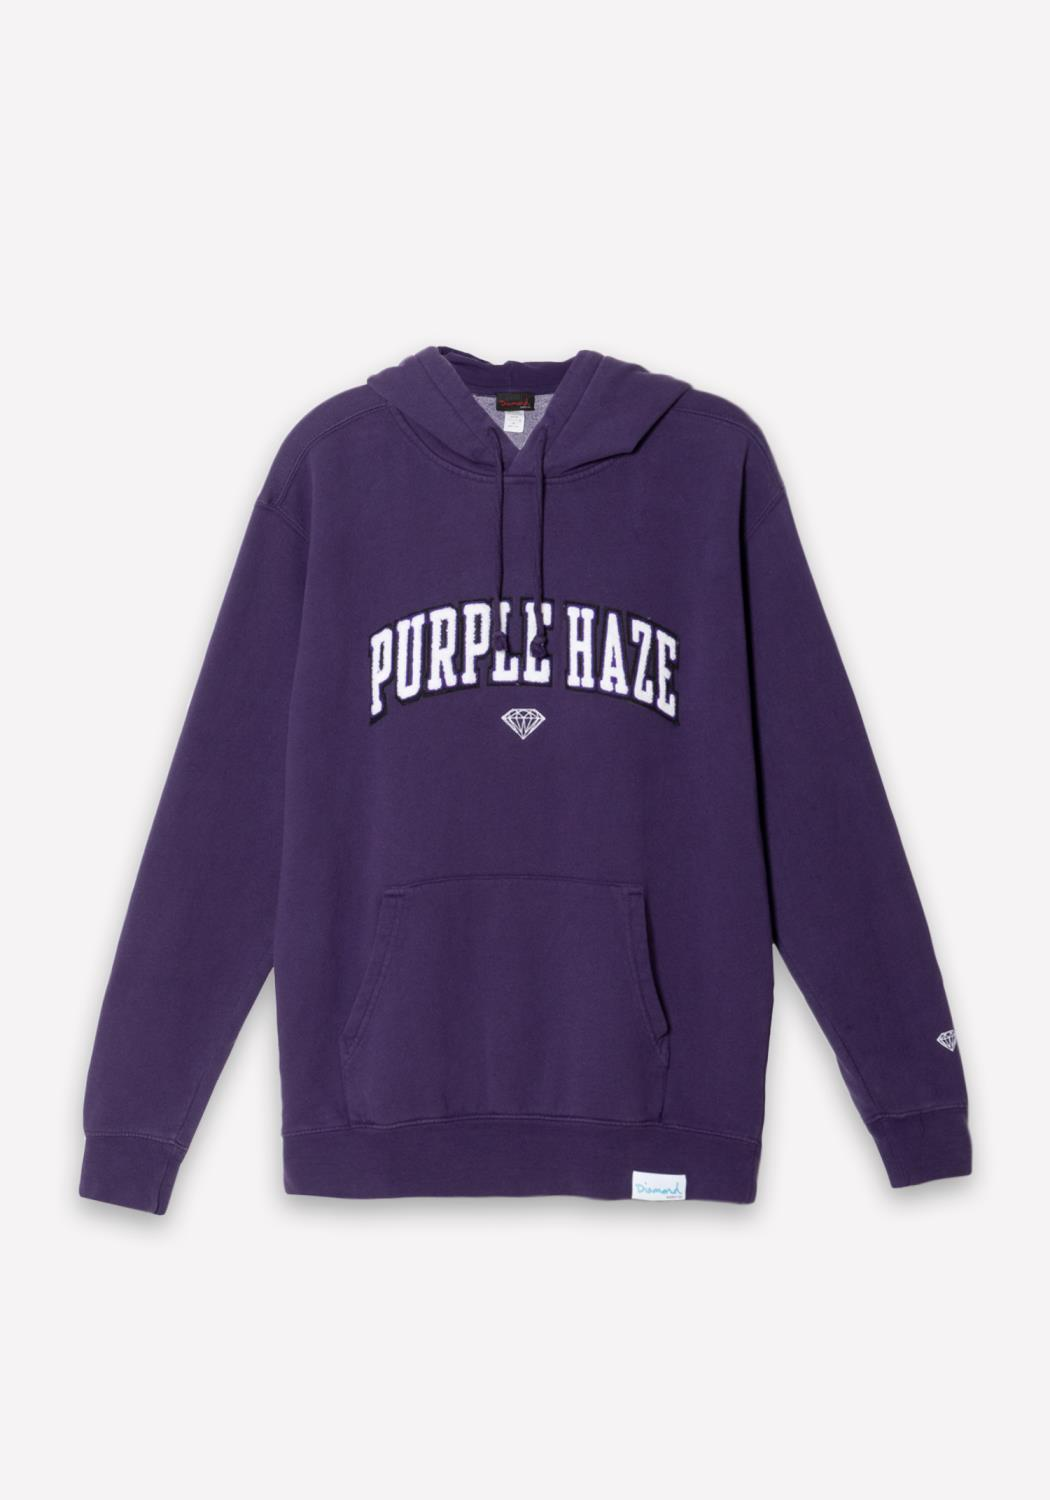 Diamond x Camron Purple Haze Hoodie in Purple